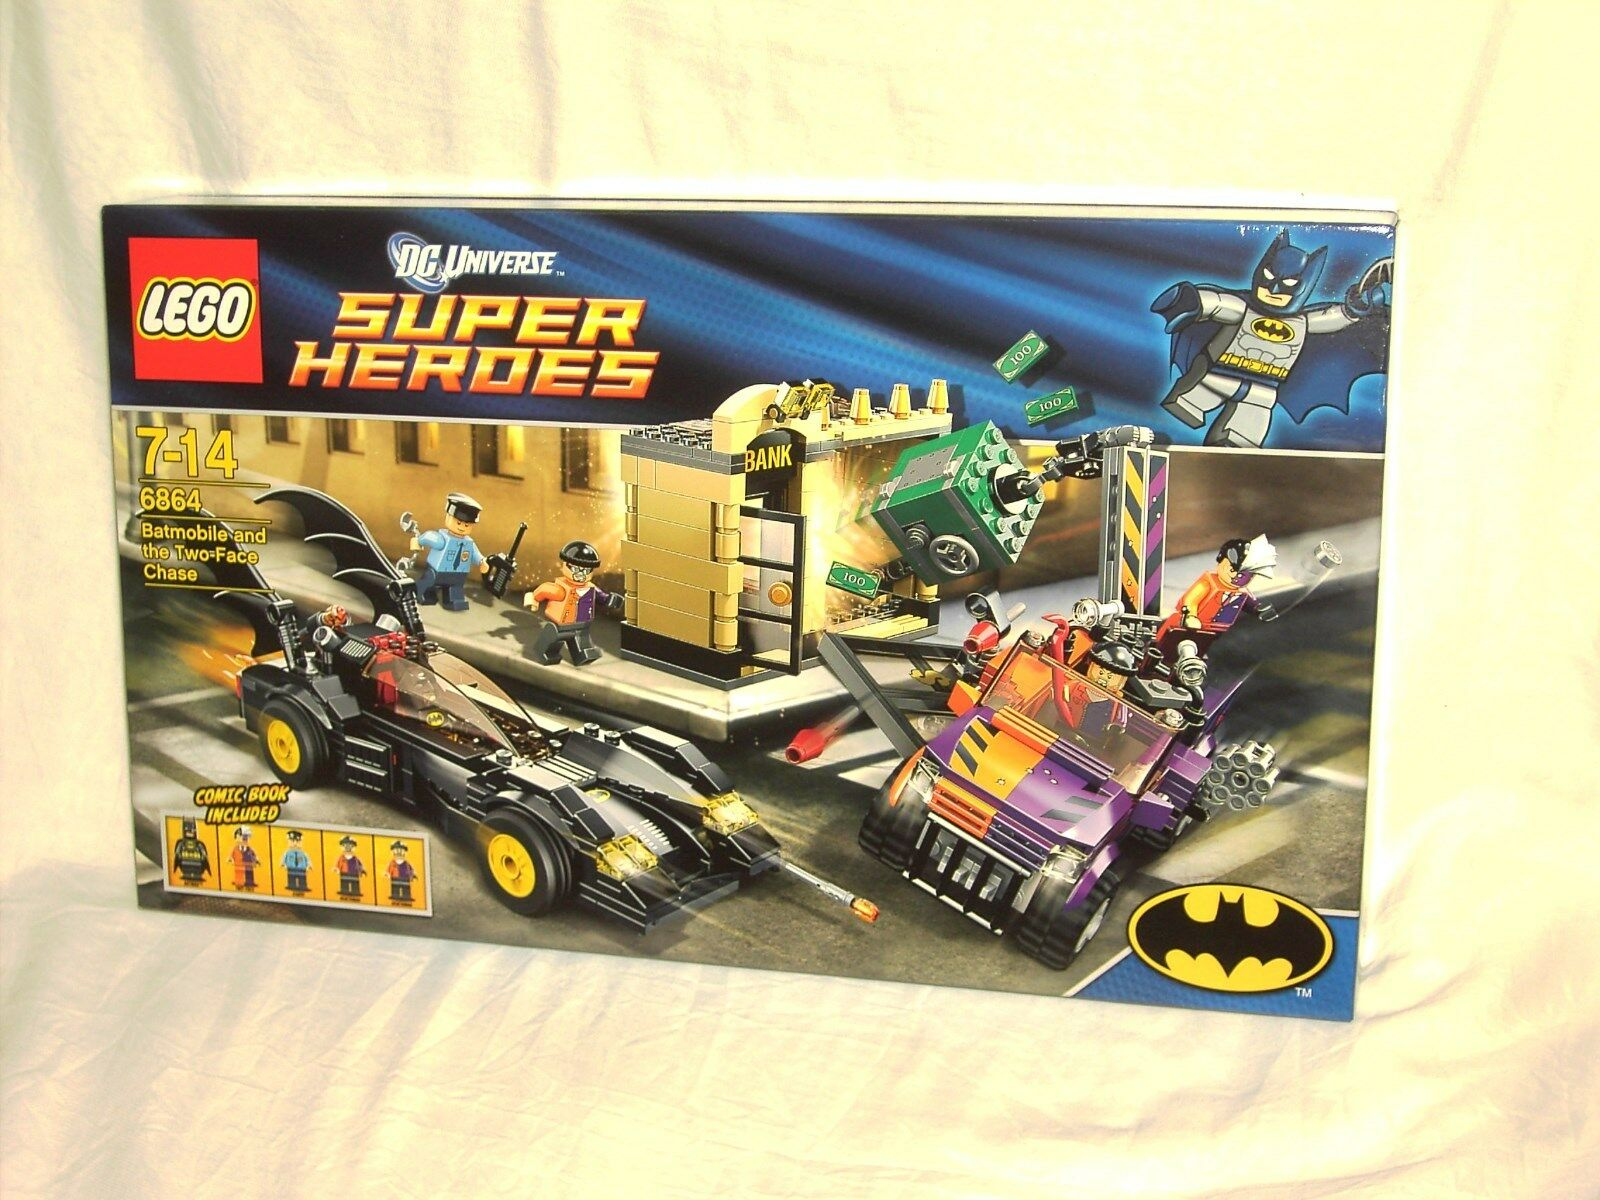 Lego Heroes 6864 Batmobile And Two Face Chase New And Sealed The